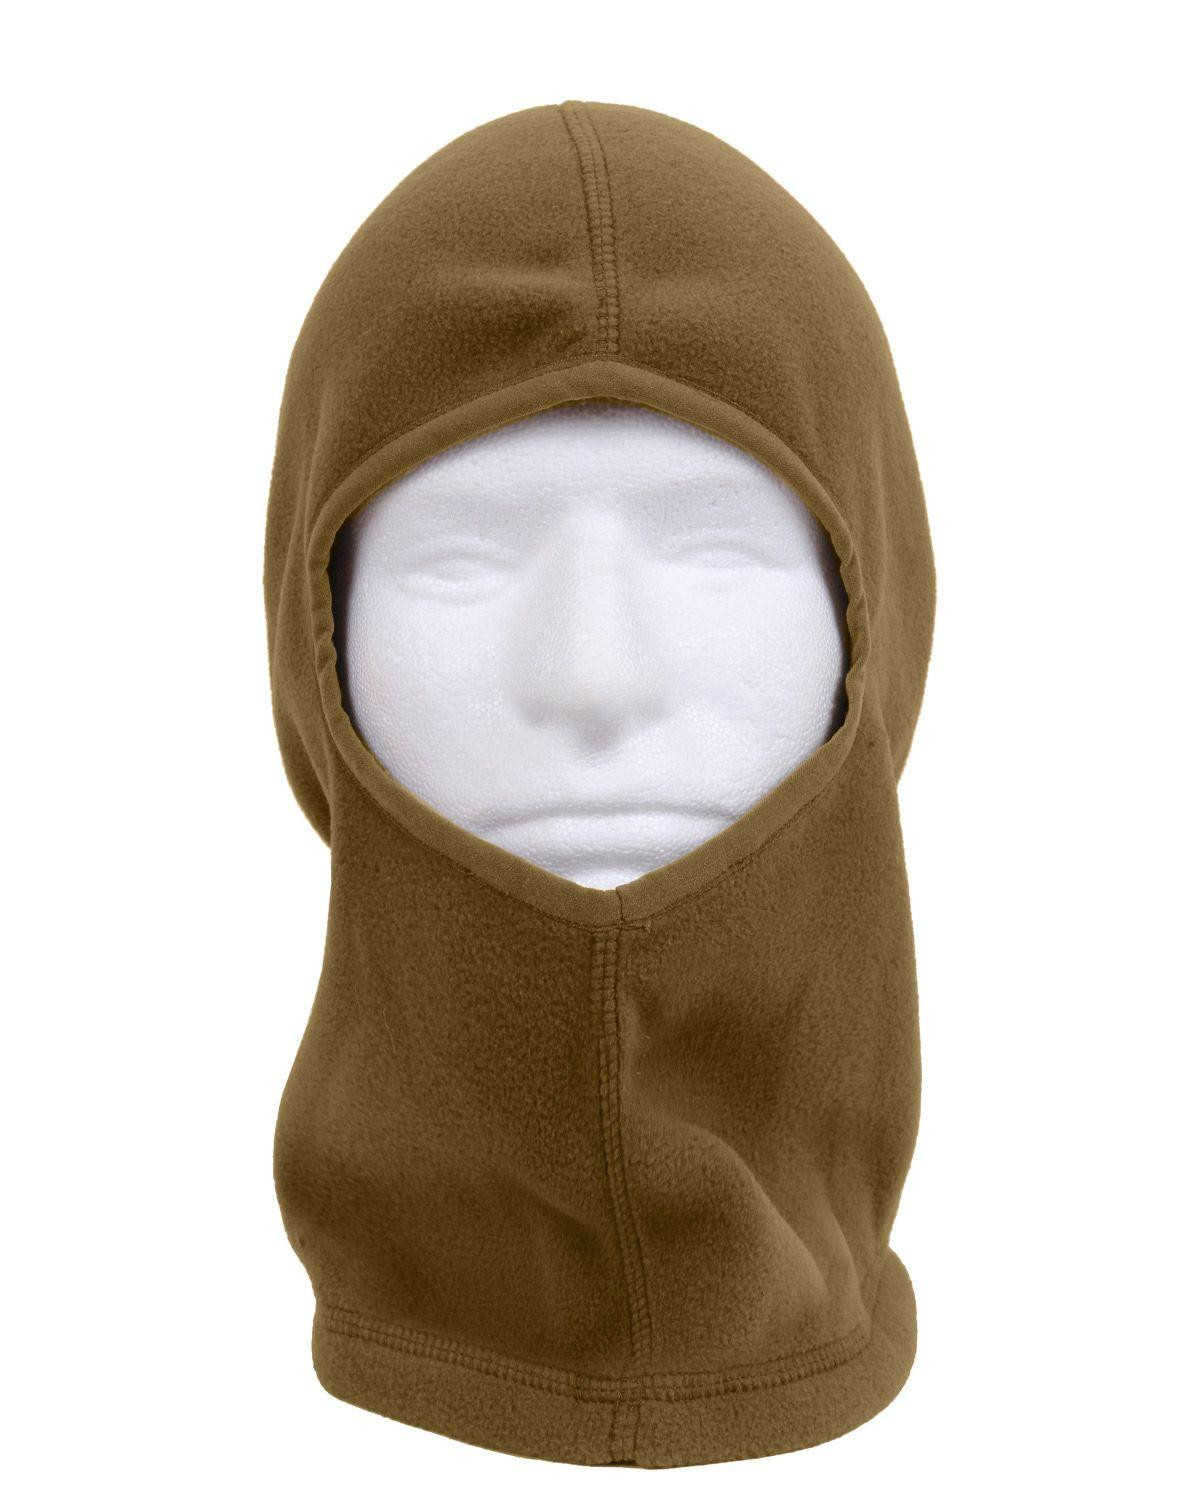 Image of   Rothco Fleece Balaclava - 1 Hul (Coyote Brun, One Size)